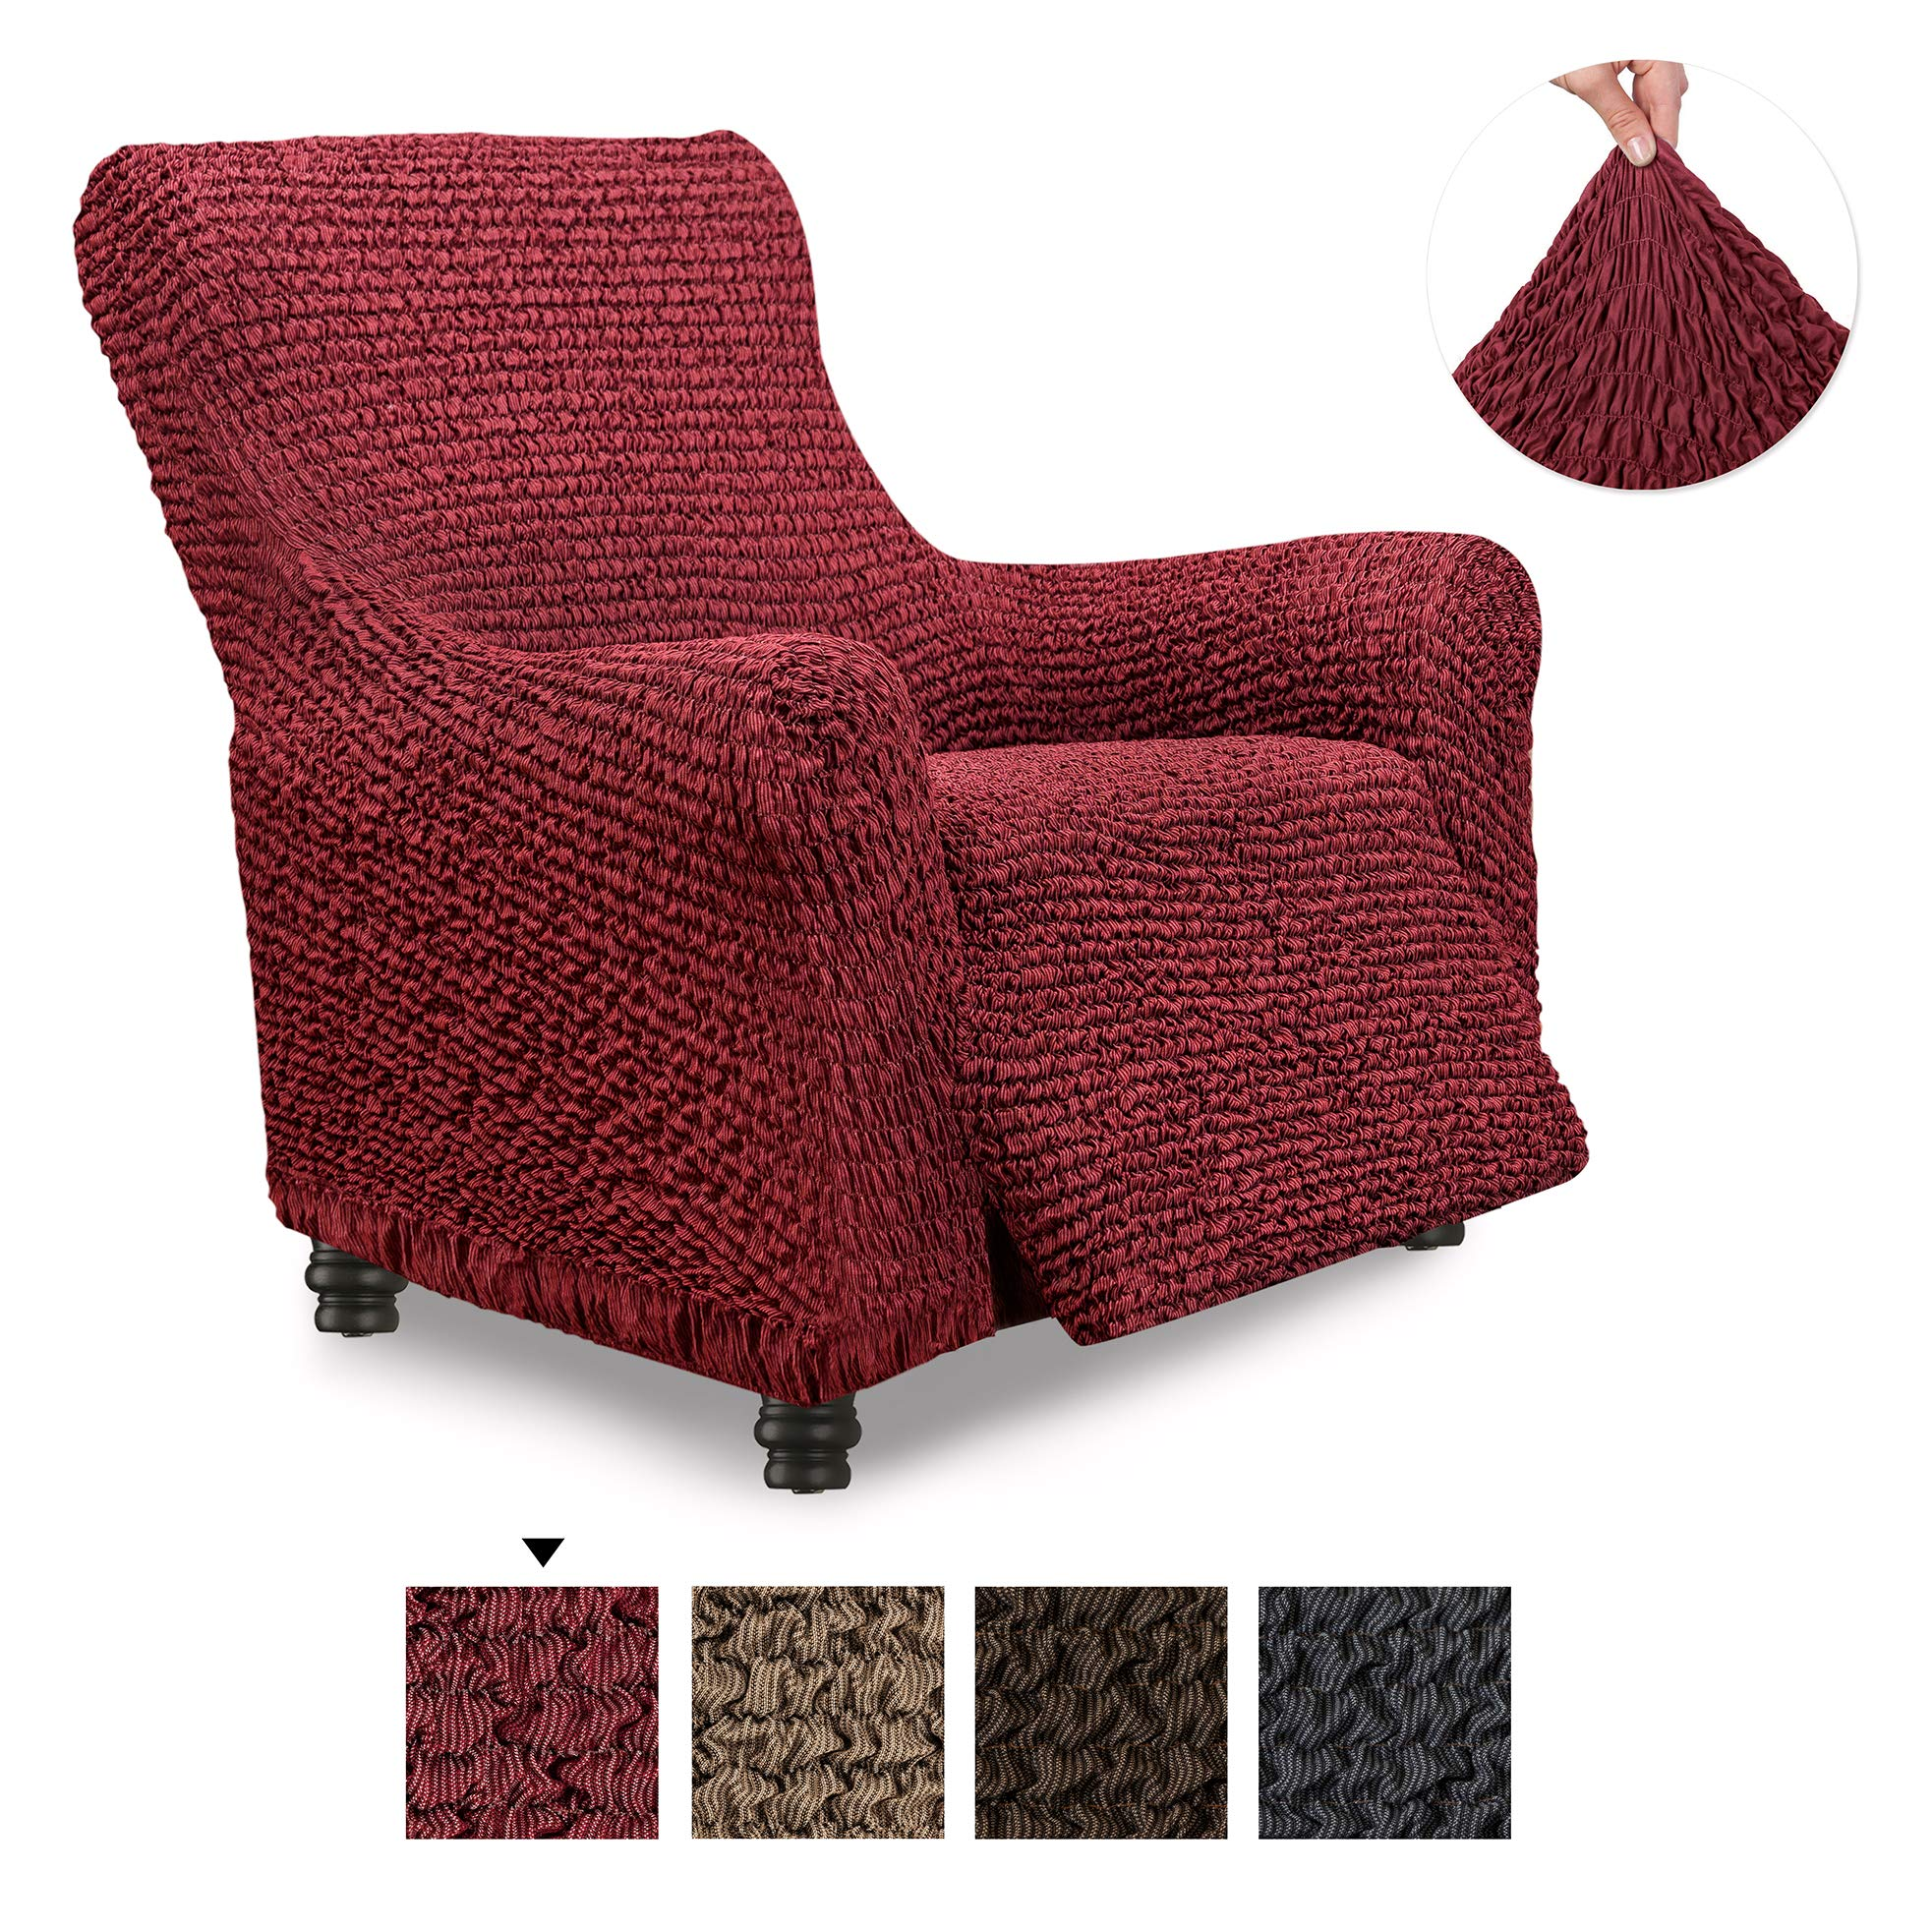 Recliner Cover - Recliner Chair Cover - Recliner Slipcover - Cotton Fabric Slipcover - 1-piece Form Fit Stretch Stylish Furniture Protector - Mille Righe Collection - Bordeaux (Recliner) by PAULATO BY GA.I.CO.